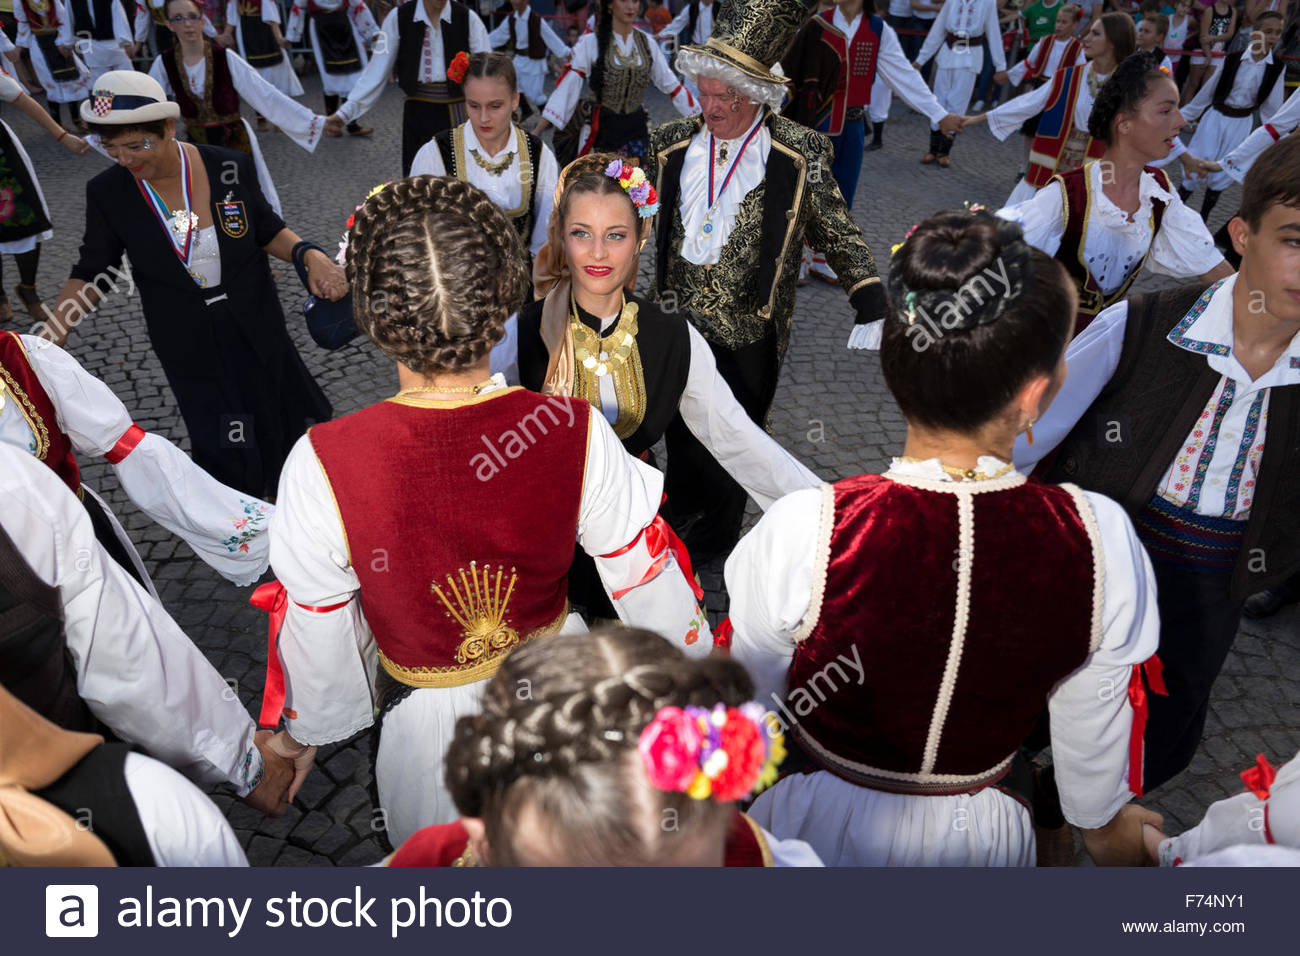 """Traditional Serbian folklore dance """"Kolo"""". Central city square in Sabac, Serbia. Stock Photo"""